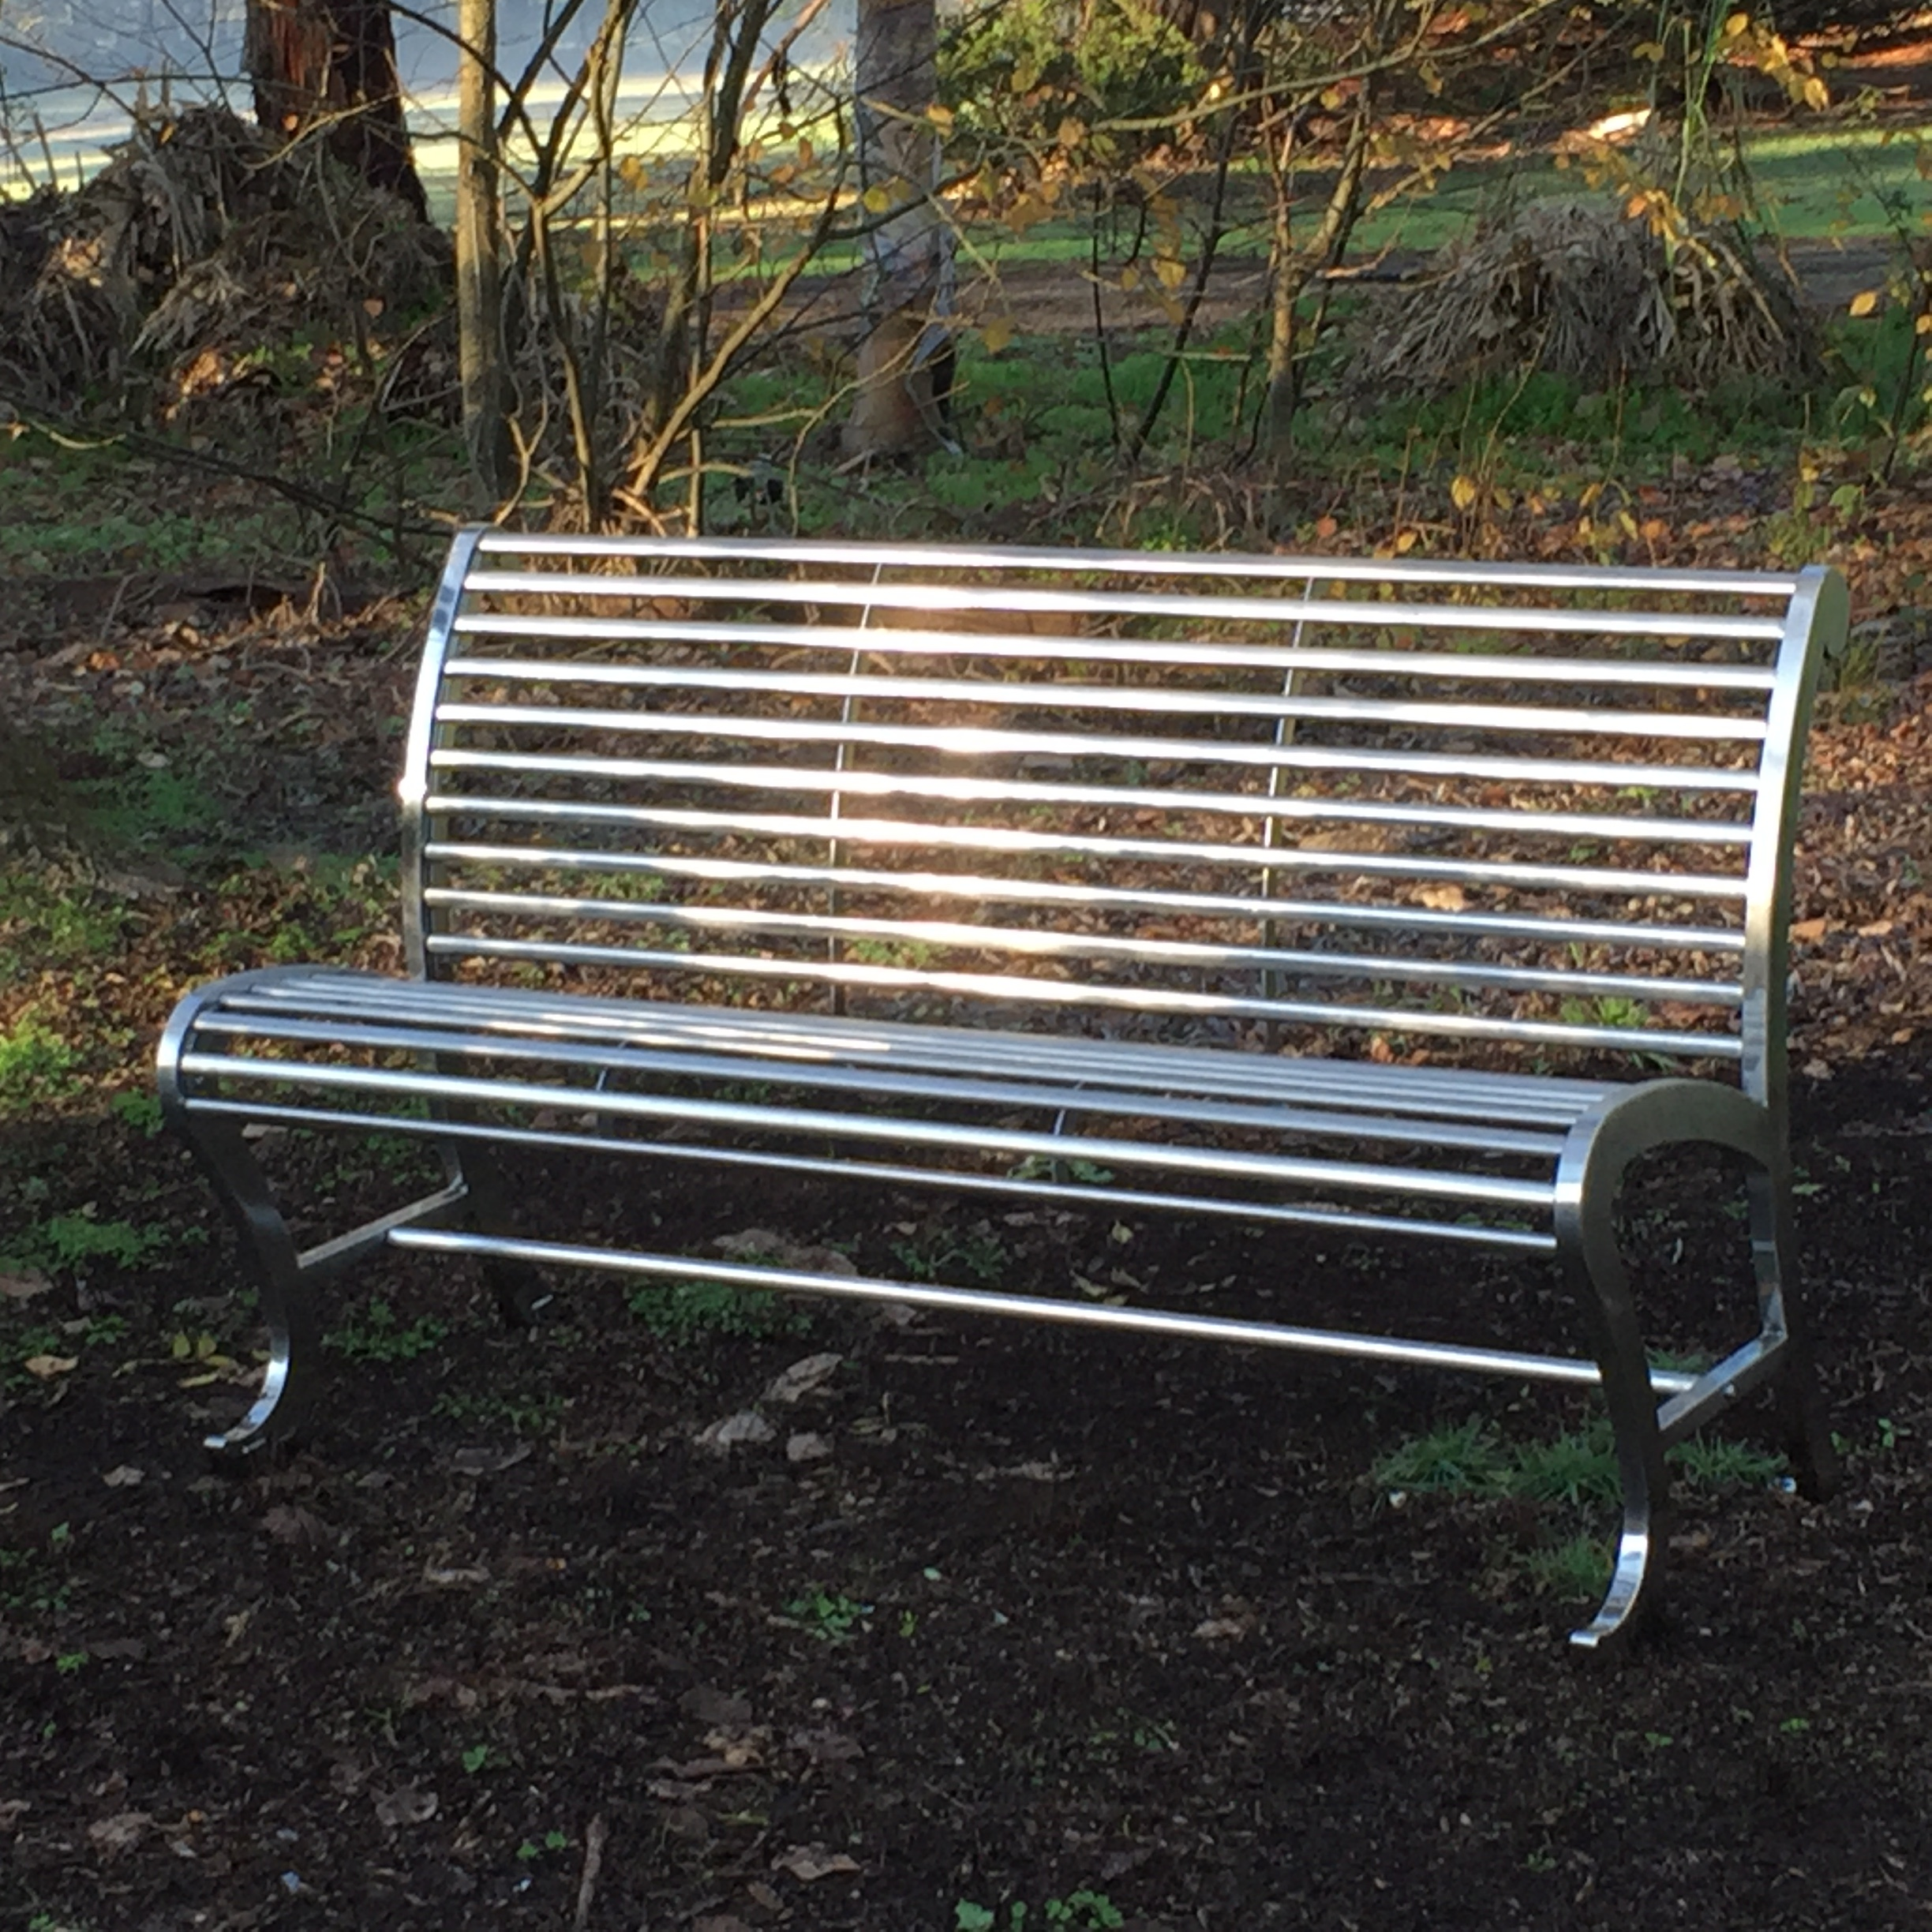 Stainless Steel Park Benches 28 Images Sculptural Modern Stainless Steel Park Bench For Sale